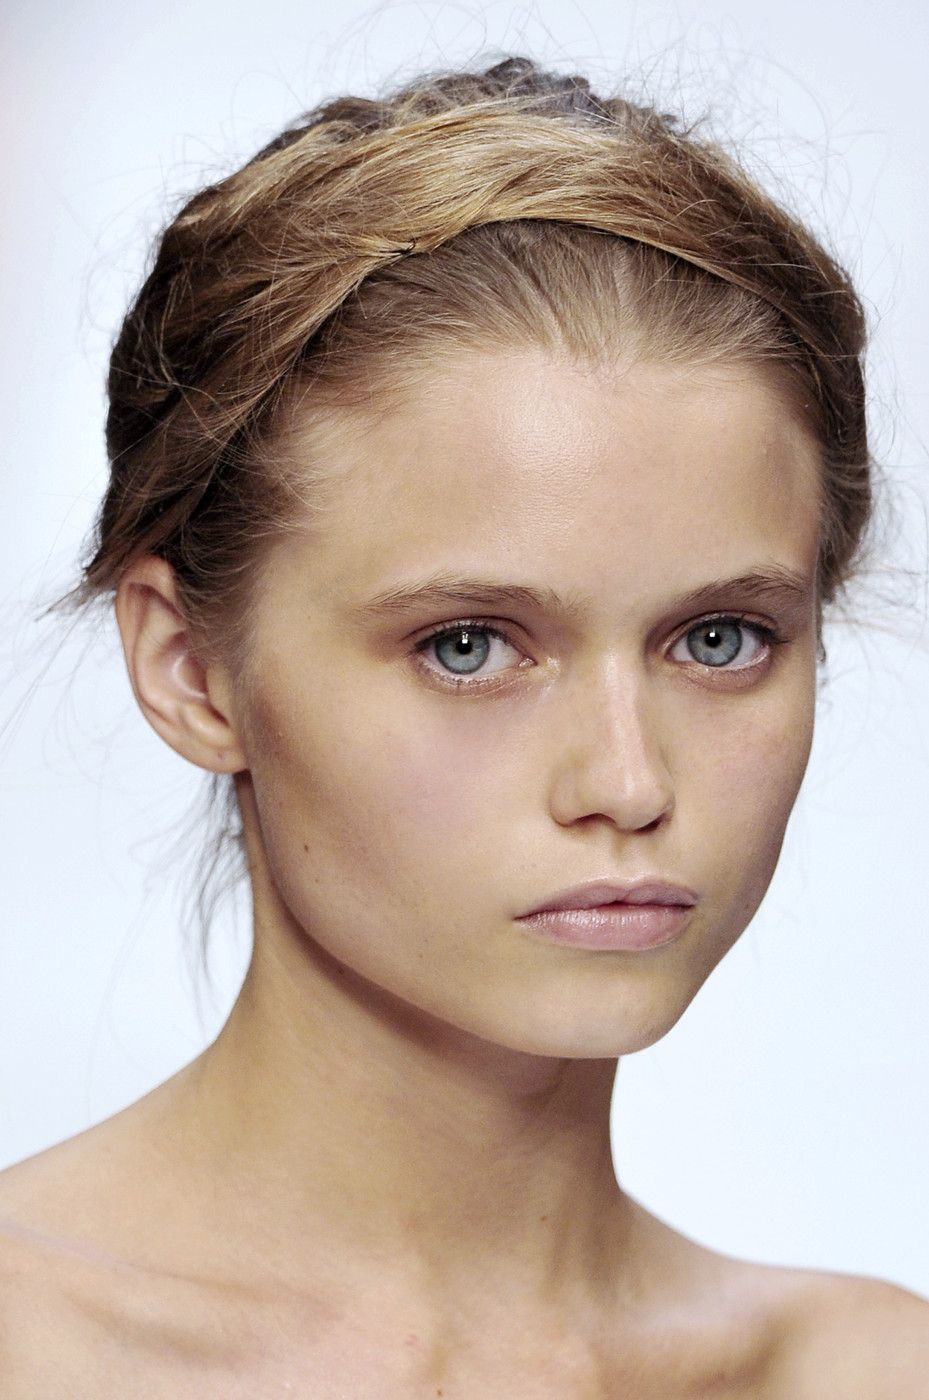 Céline SS09 Makeup inspiration, Beauty, Face